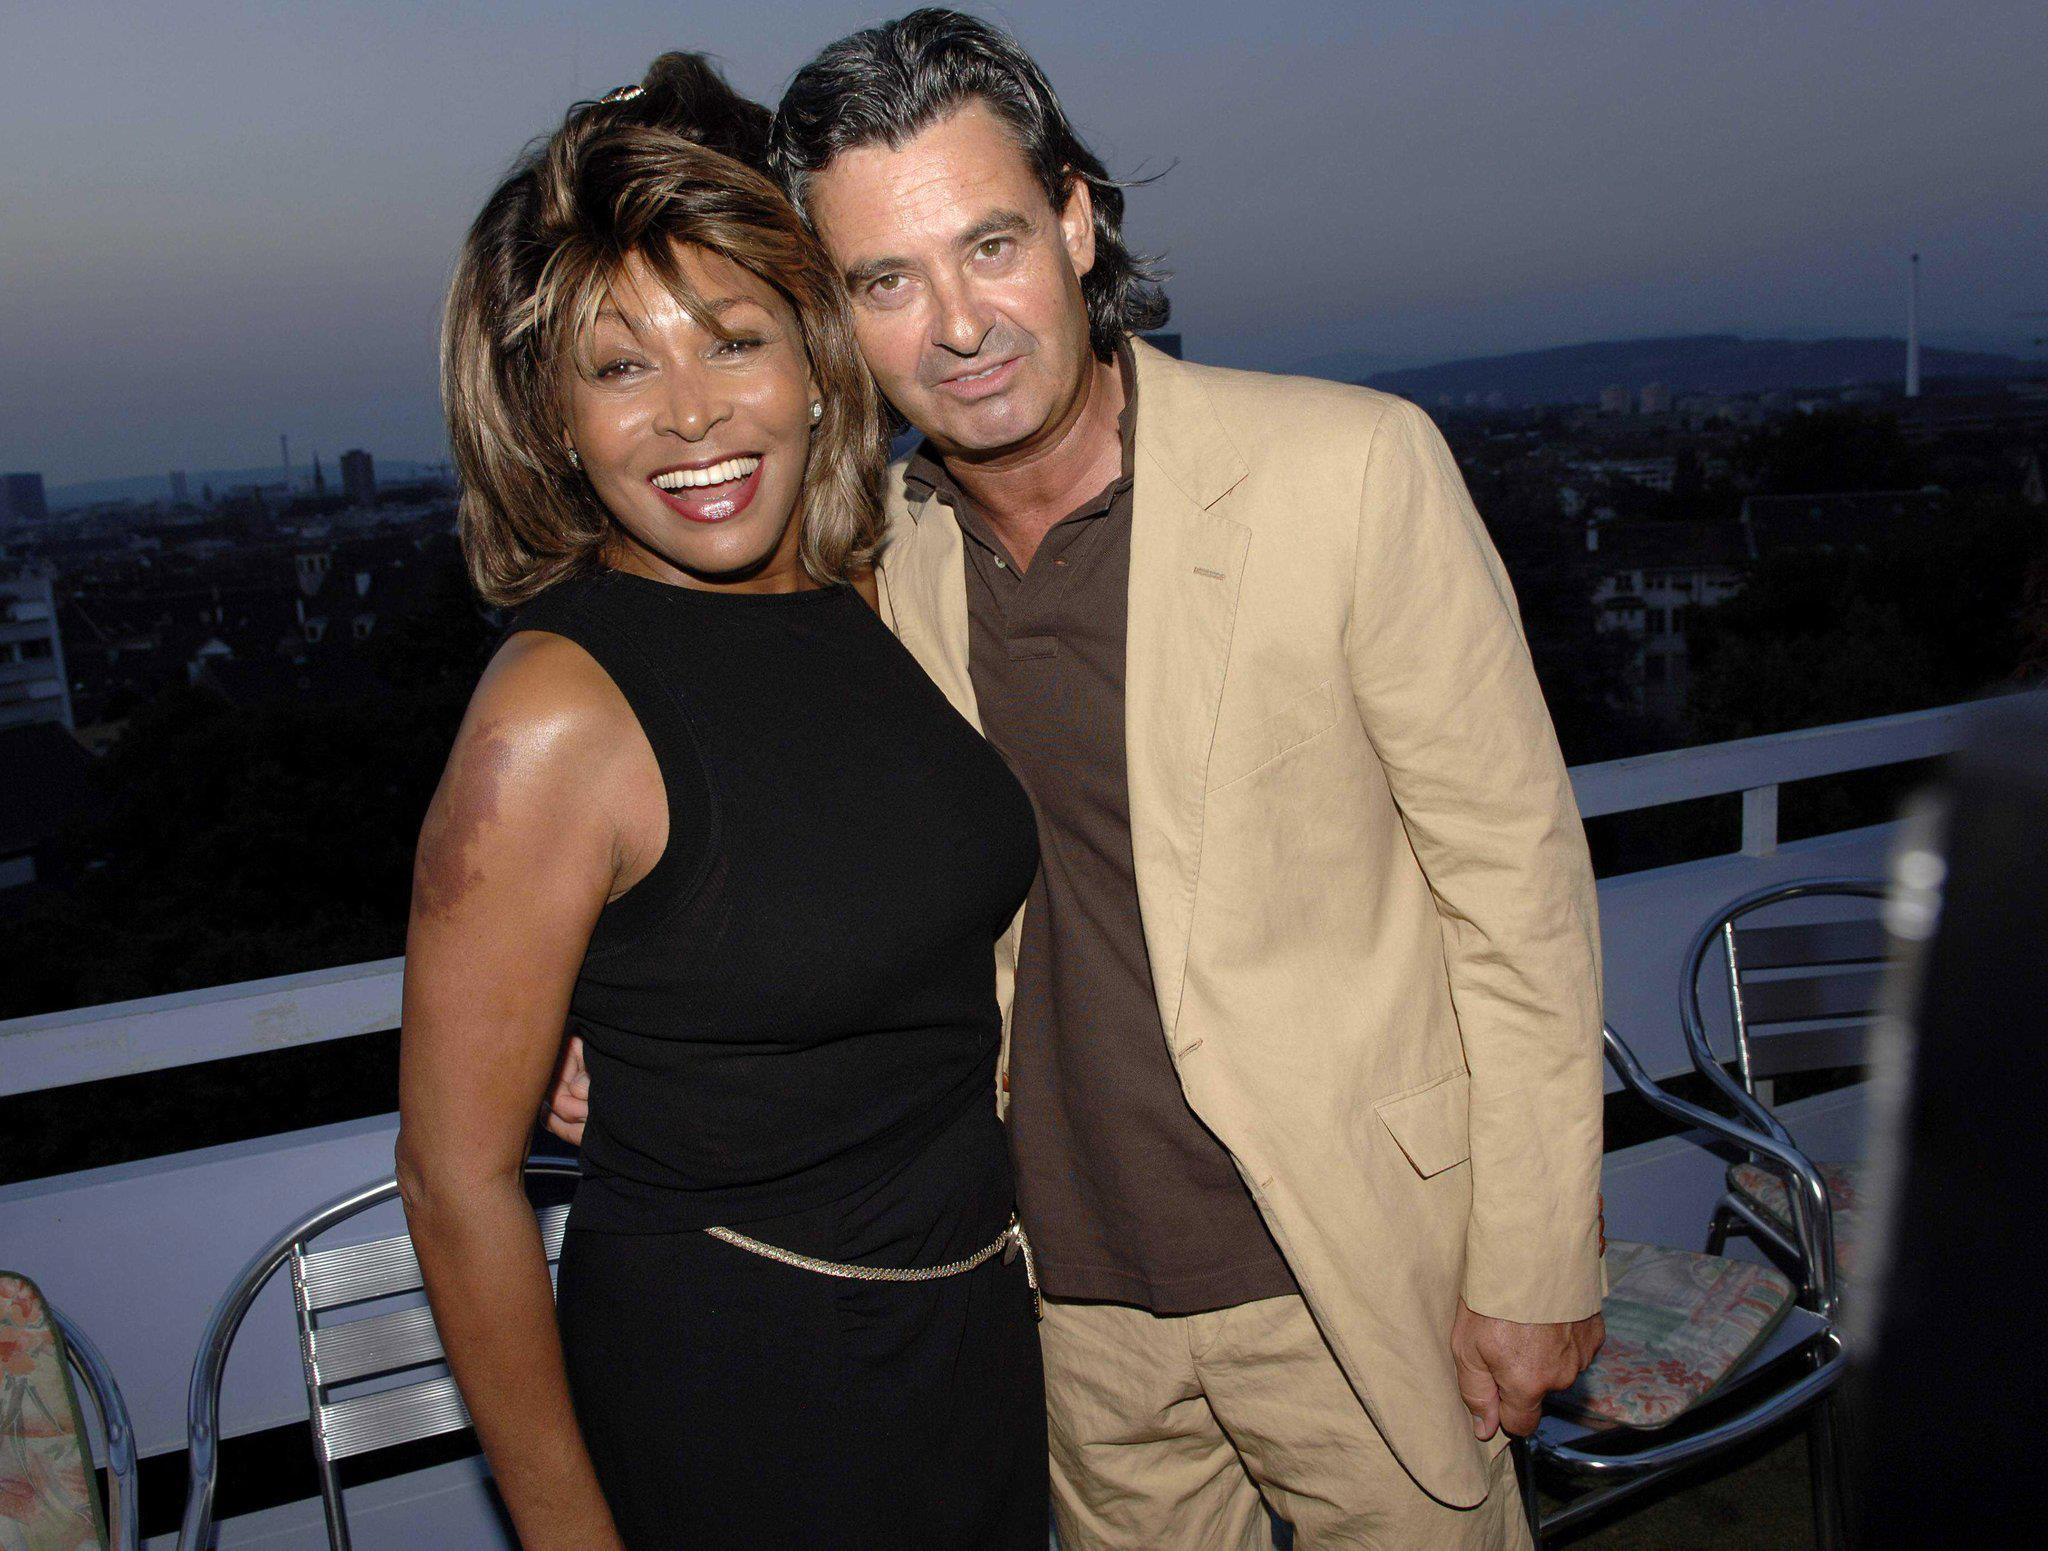 Want Tina Turner For a Grammy Lifetime Achievement Award on Facebook